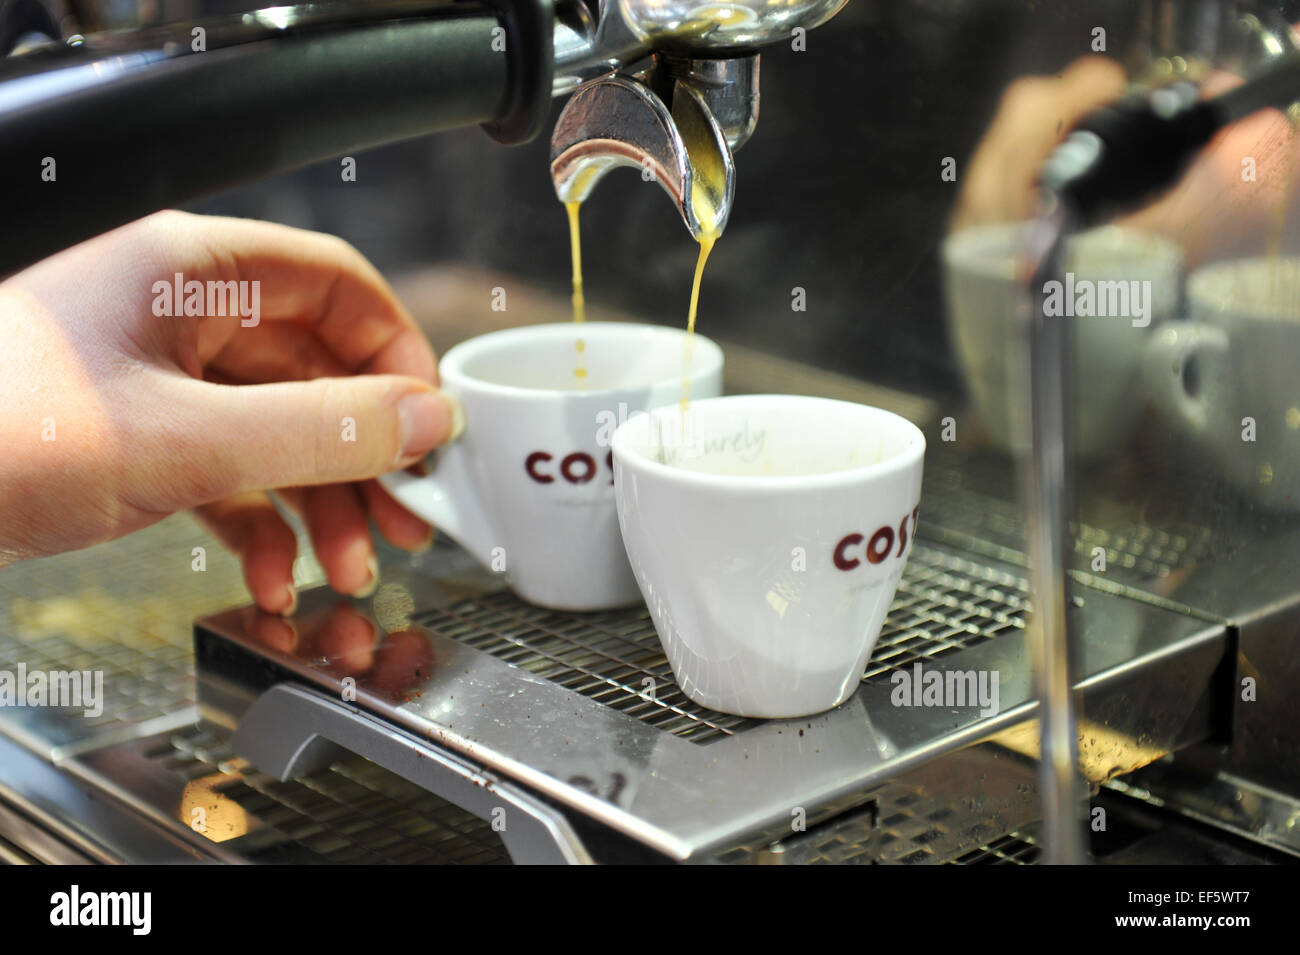 Making Espresso Coffee In A Costa Coffee Shop Uk Stock